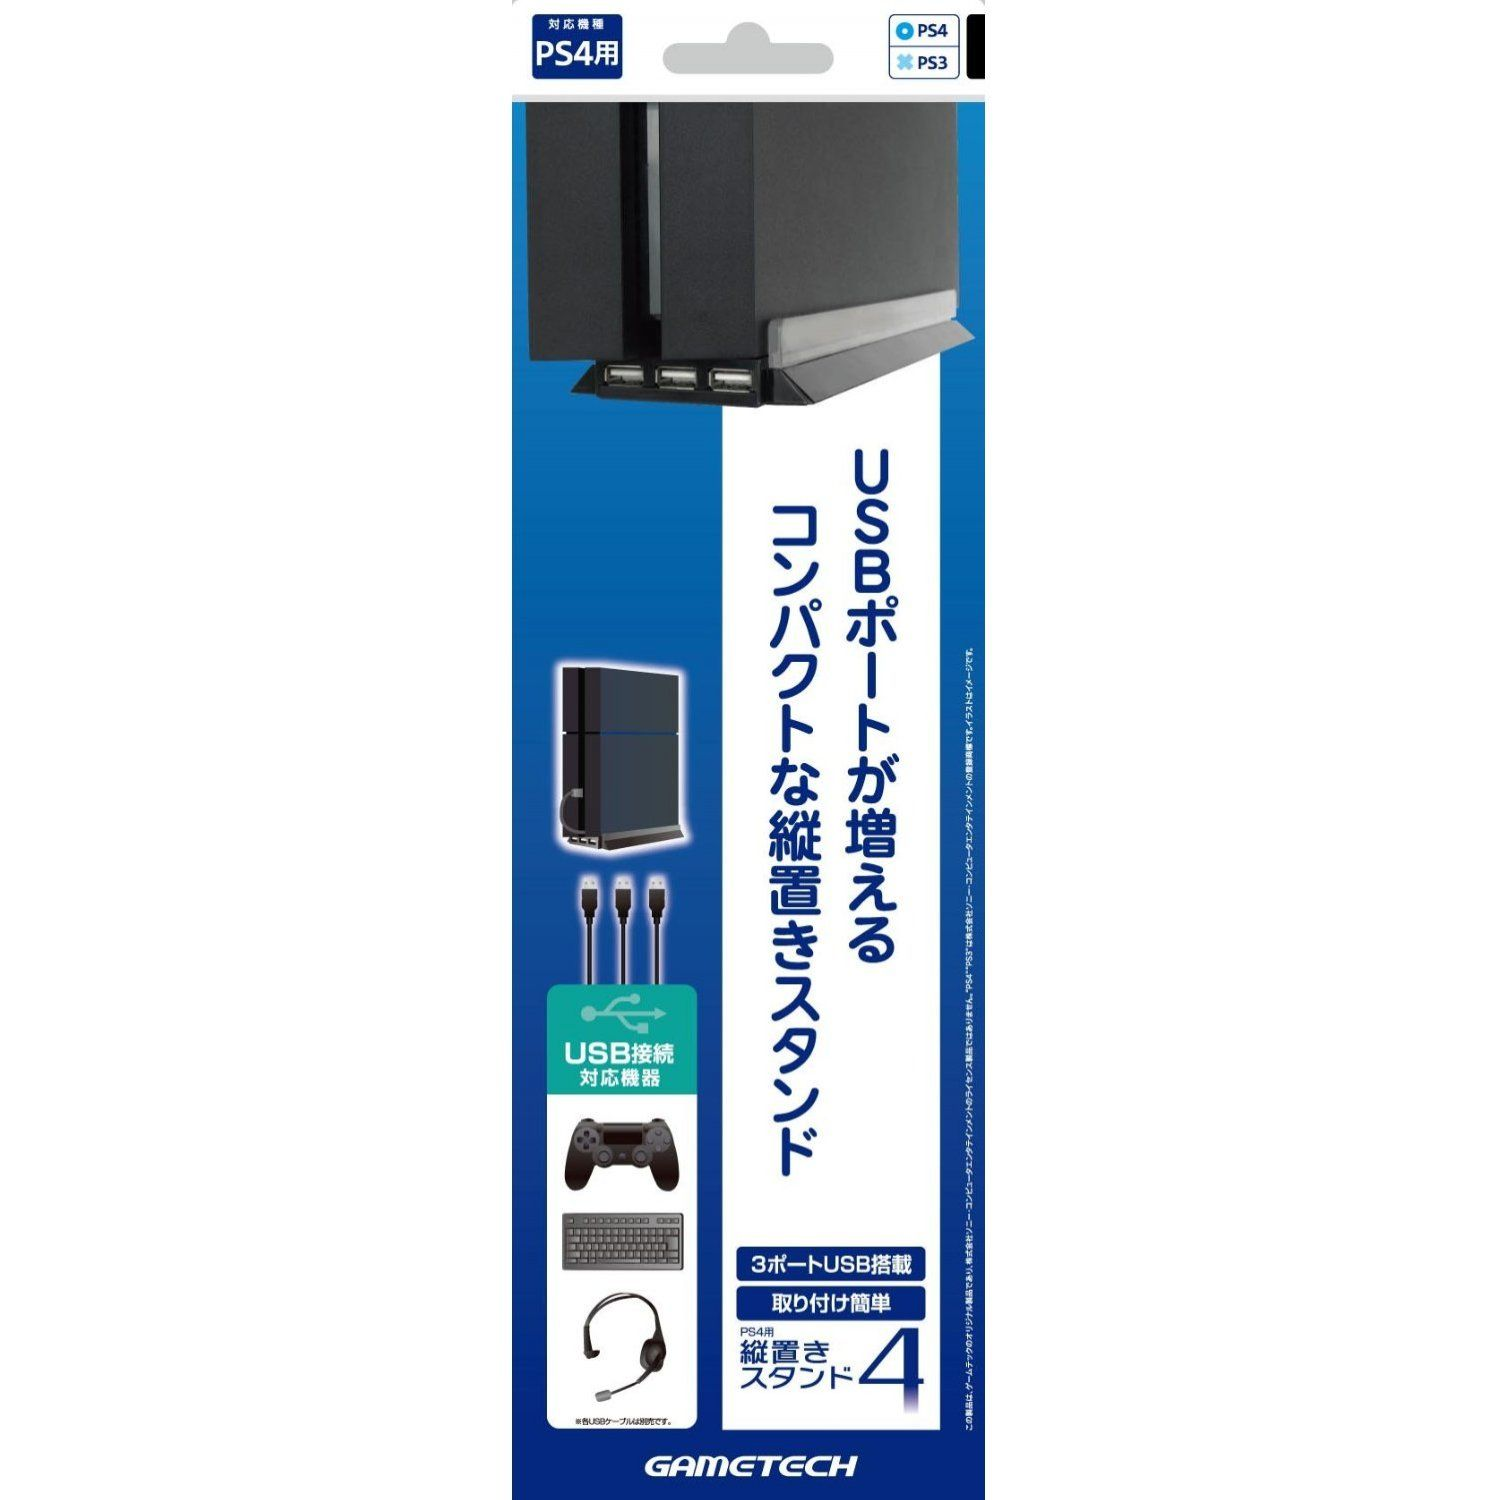 350 Playstation 4 Accessories Ideas Playstation Playstation 4 Itunes